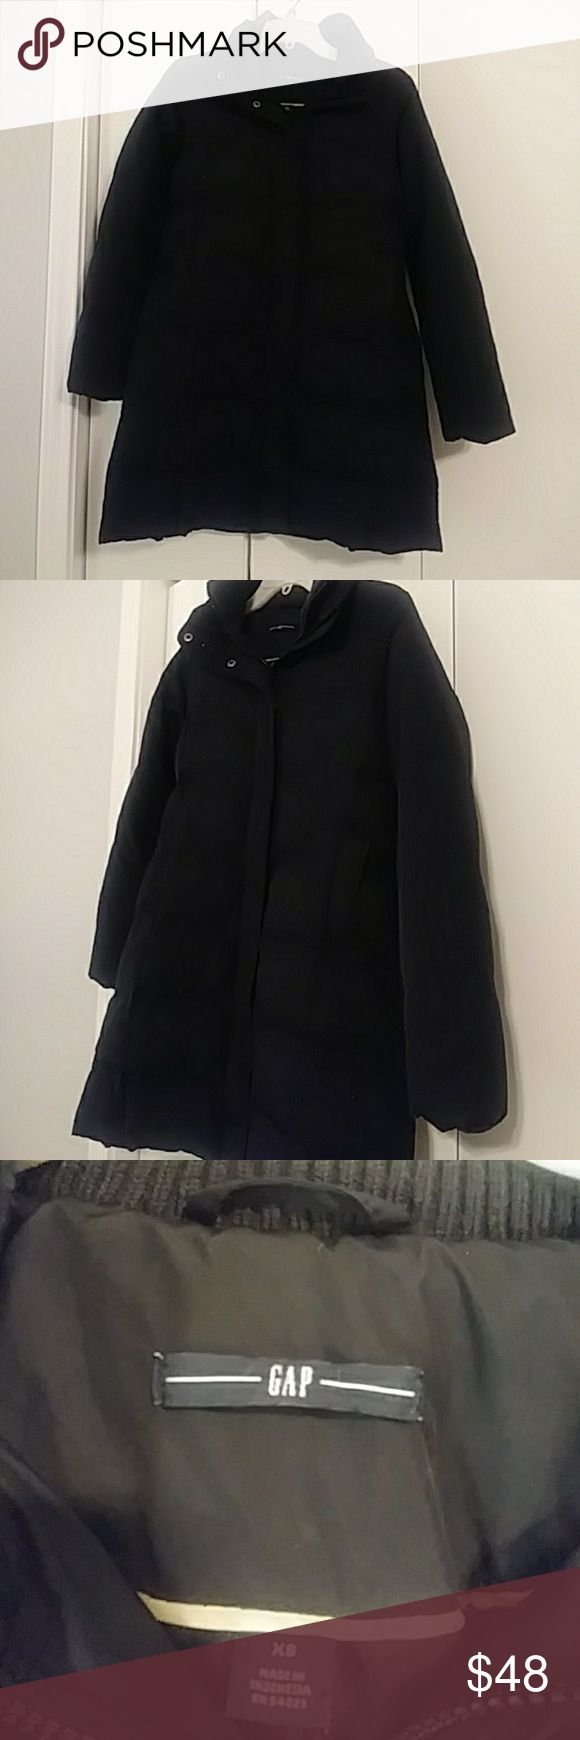 Gap women's Black Jacket Great conditon Gap Black Jacket. Super warm and confortable. It does Not come with a hoodie. Size XS GAP Jackets & Coats Puffers